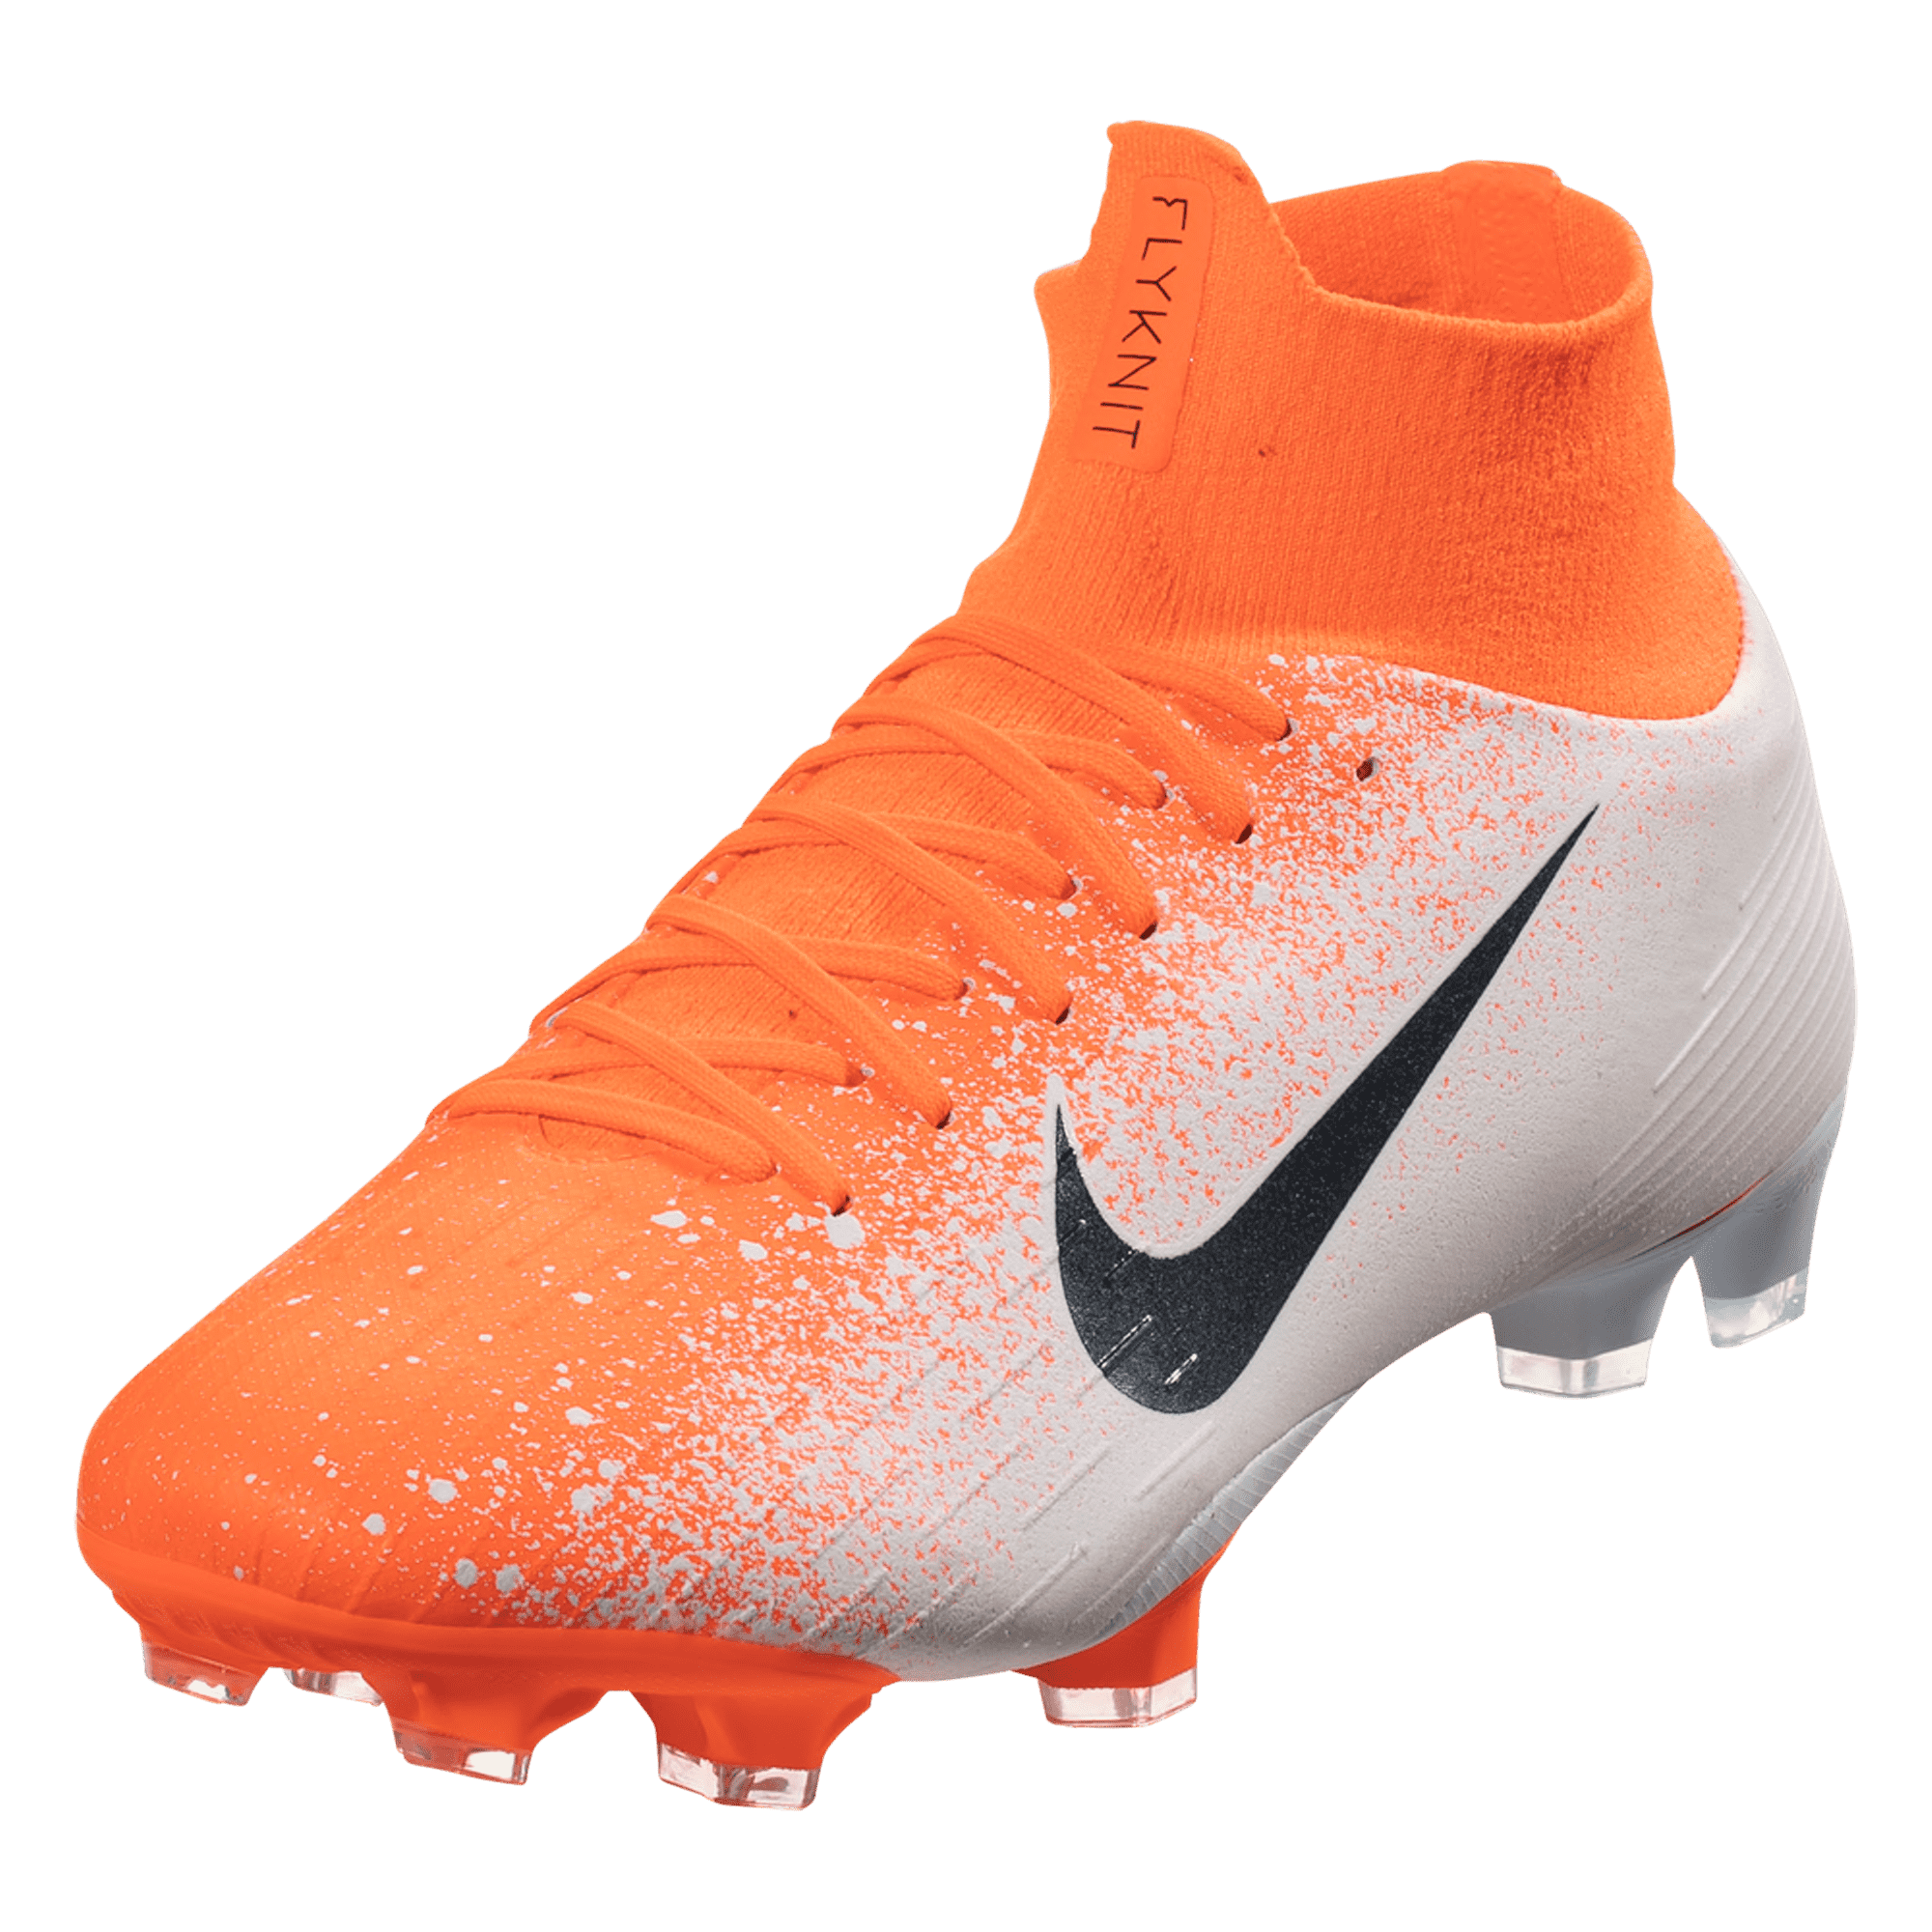 74ef63577 Nike Mercurial Superfly VI Pro FG Soccer Cleat – Hyper Crimson/Black/White